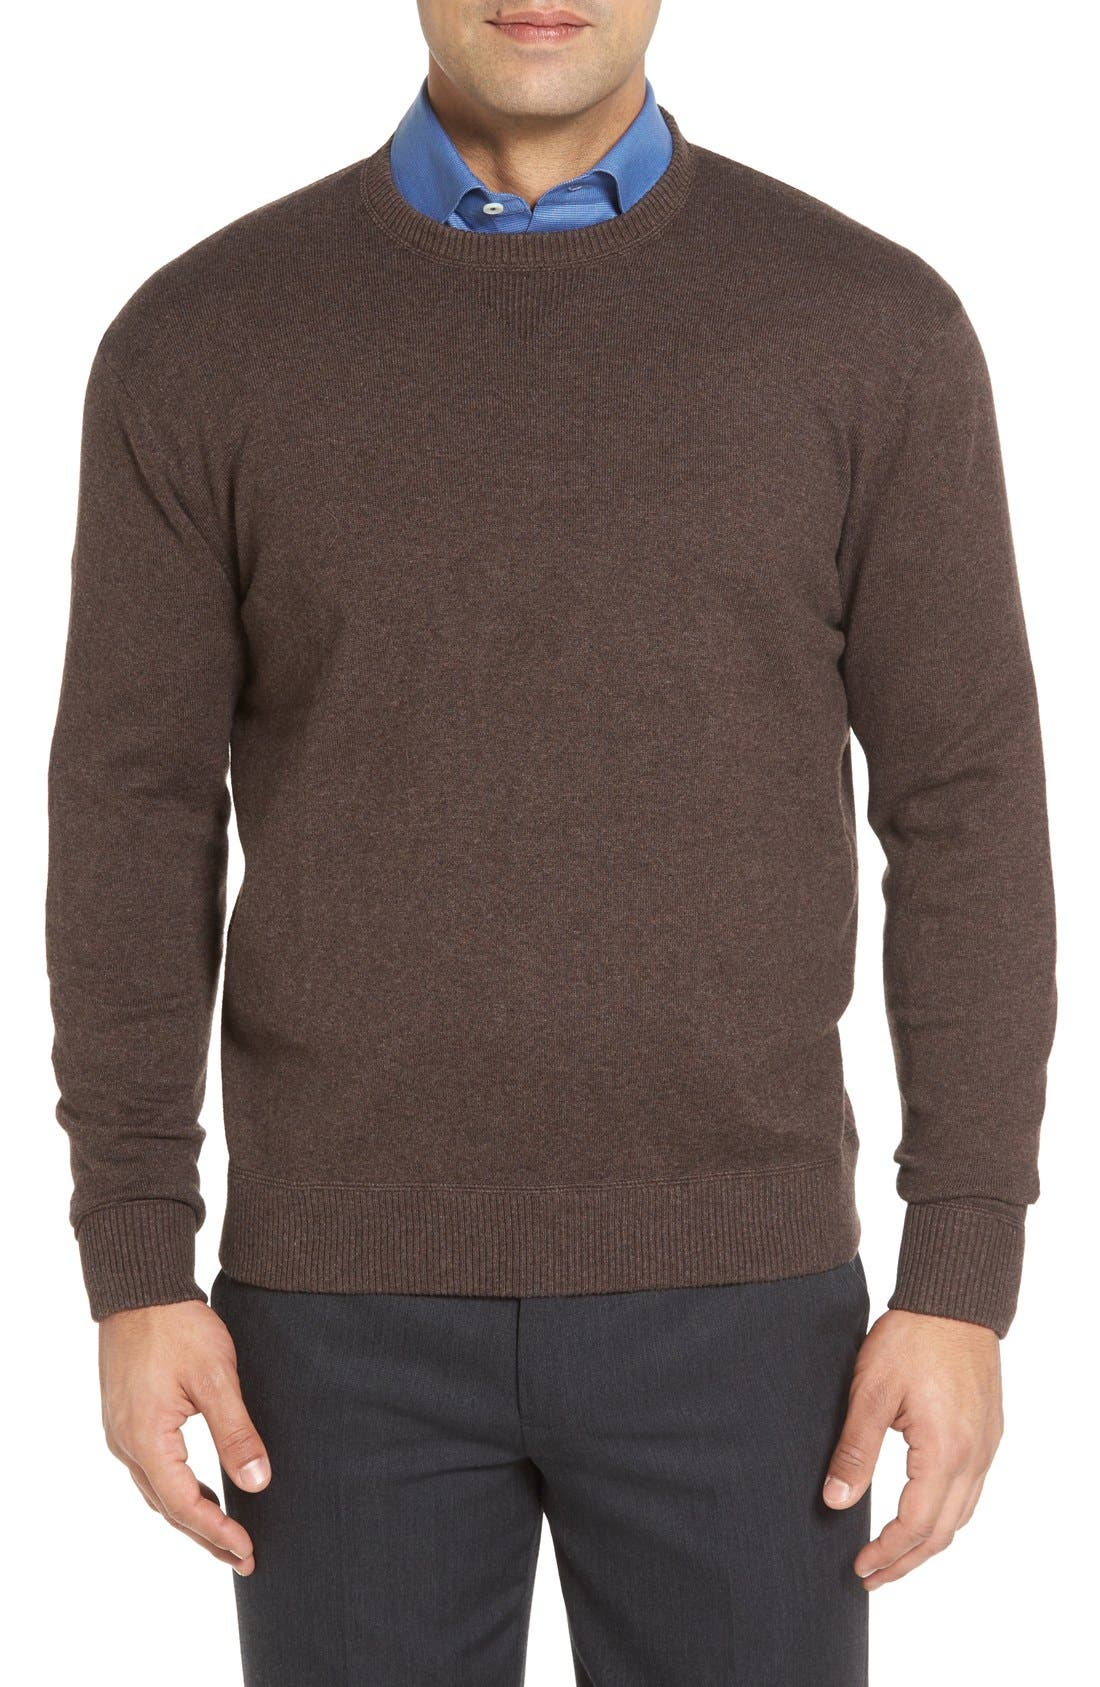 'Jersey Sport' Cotton Blend Crewneck Sweater,                             Main thumbnail 1, color,                             Coffee